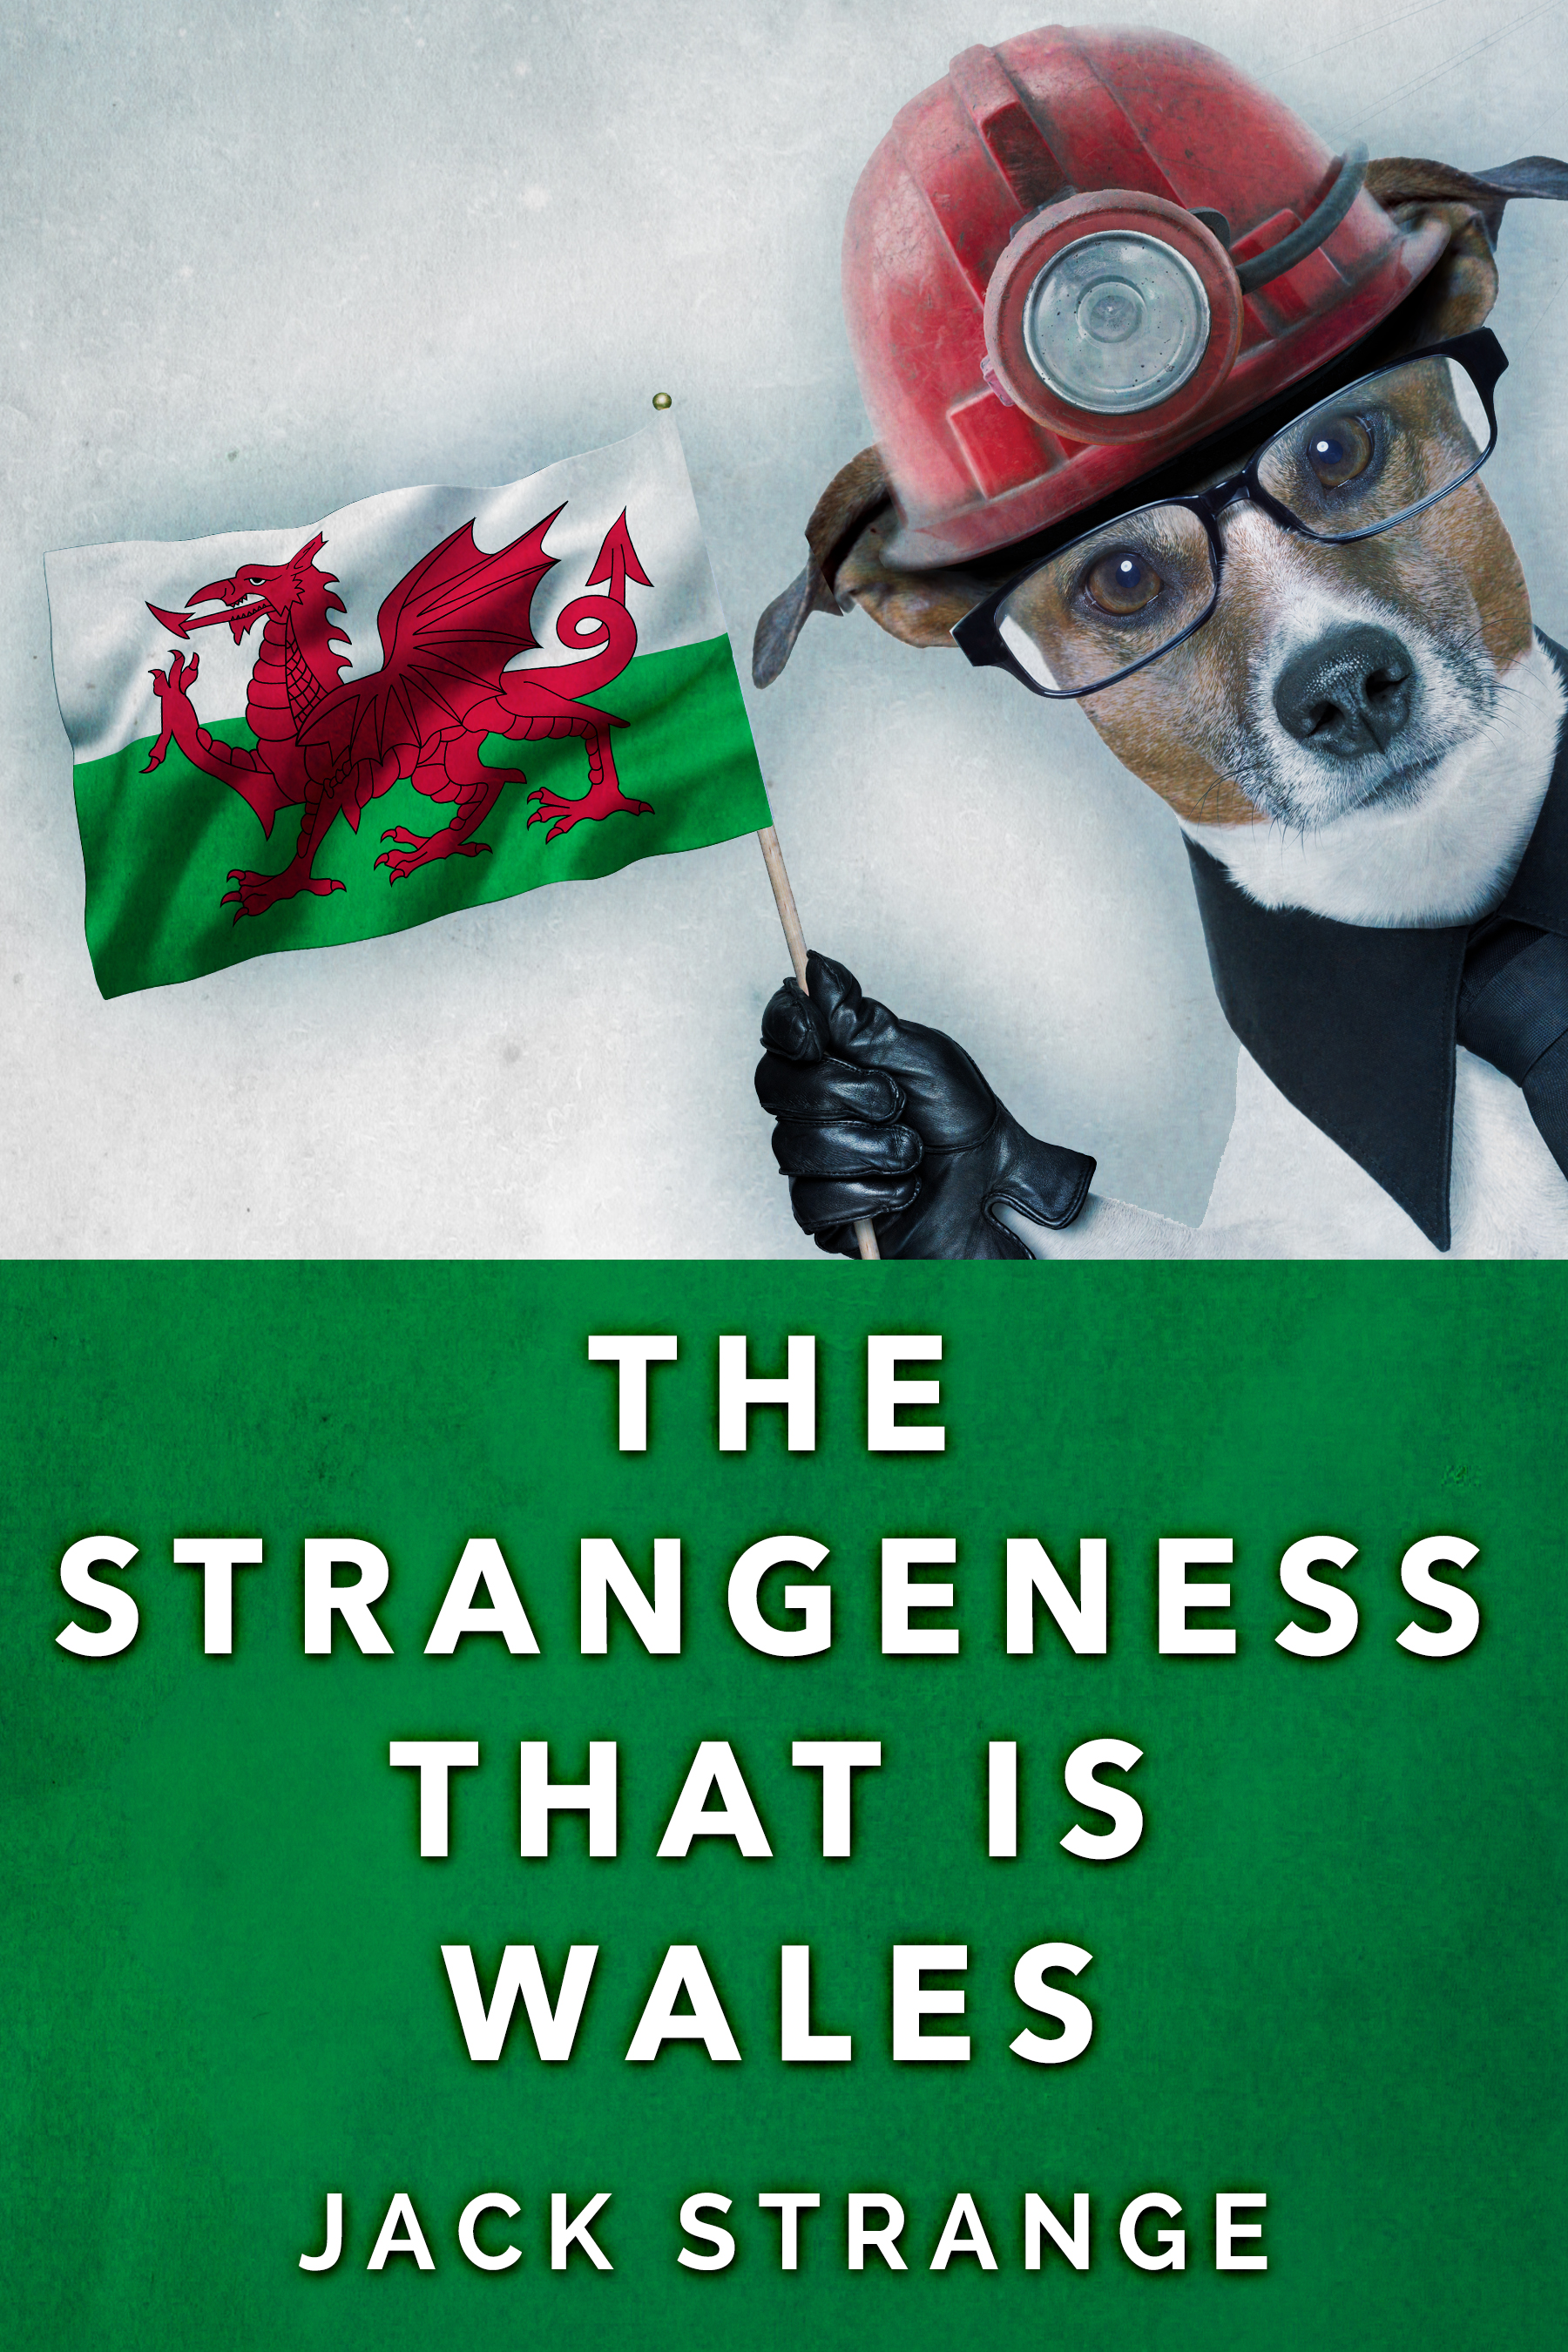 The strangeness that is wales